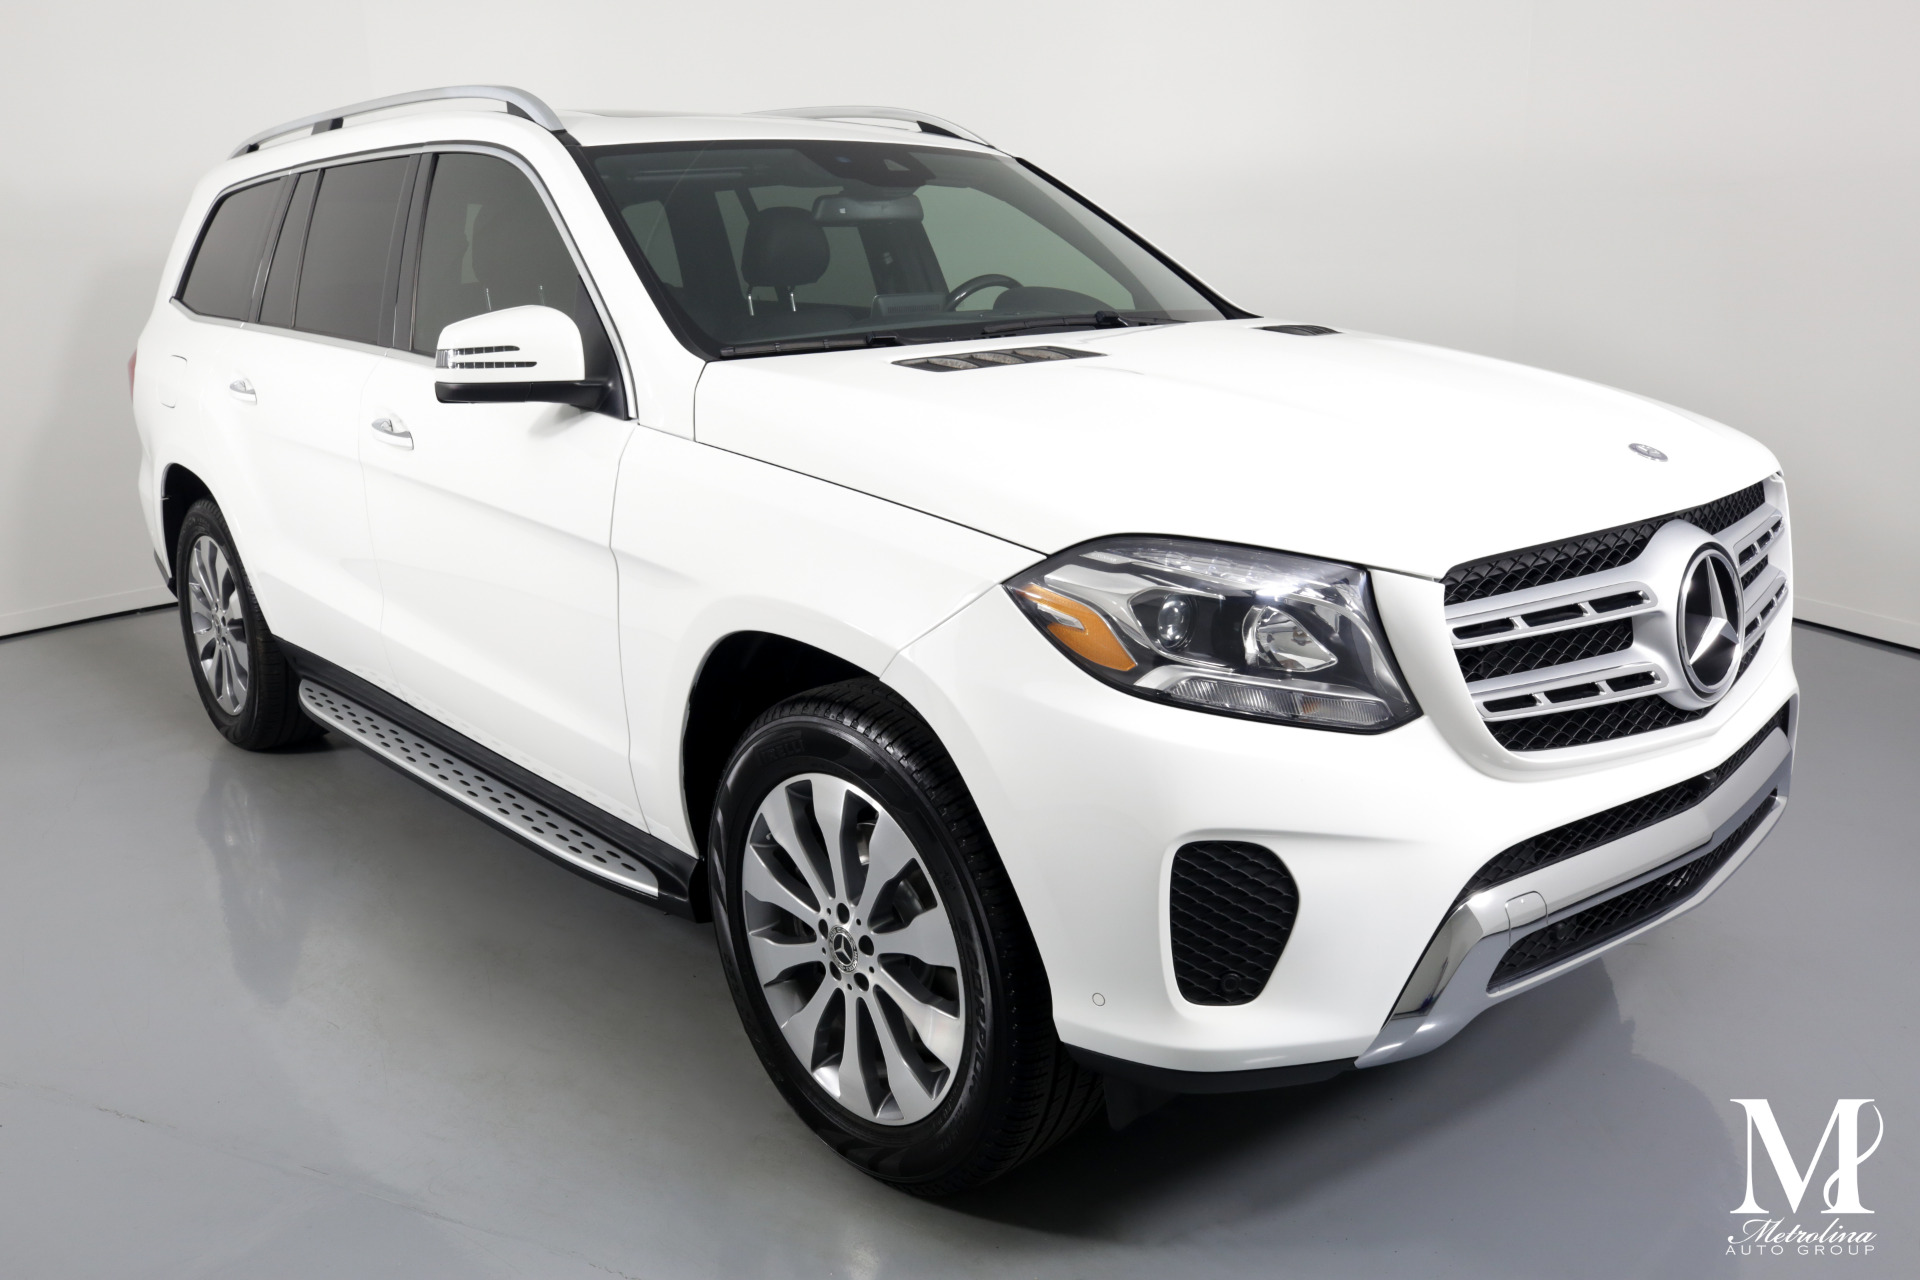 Used 2017 Mercedes-Benz GLS GLS 450 for sale Sold at Metrolina Auto Group in Charlotte NC 28217 - 2